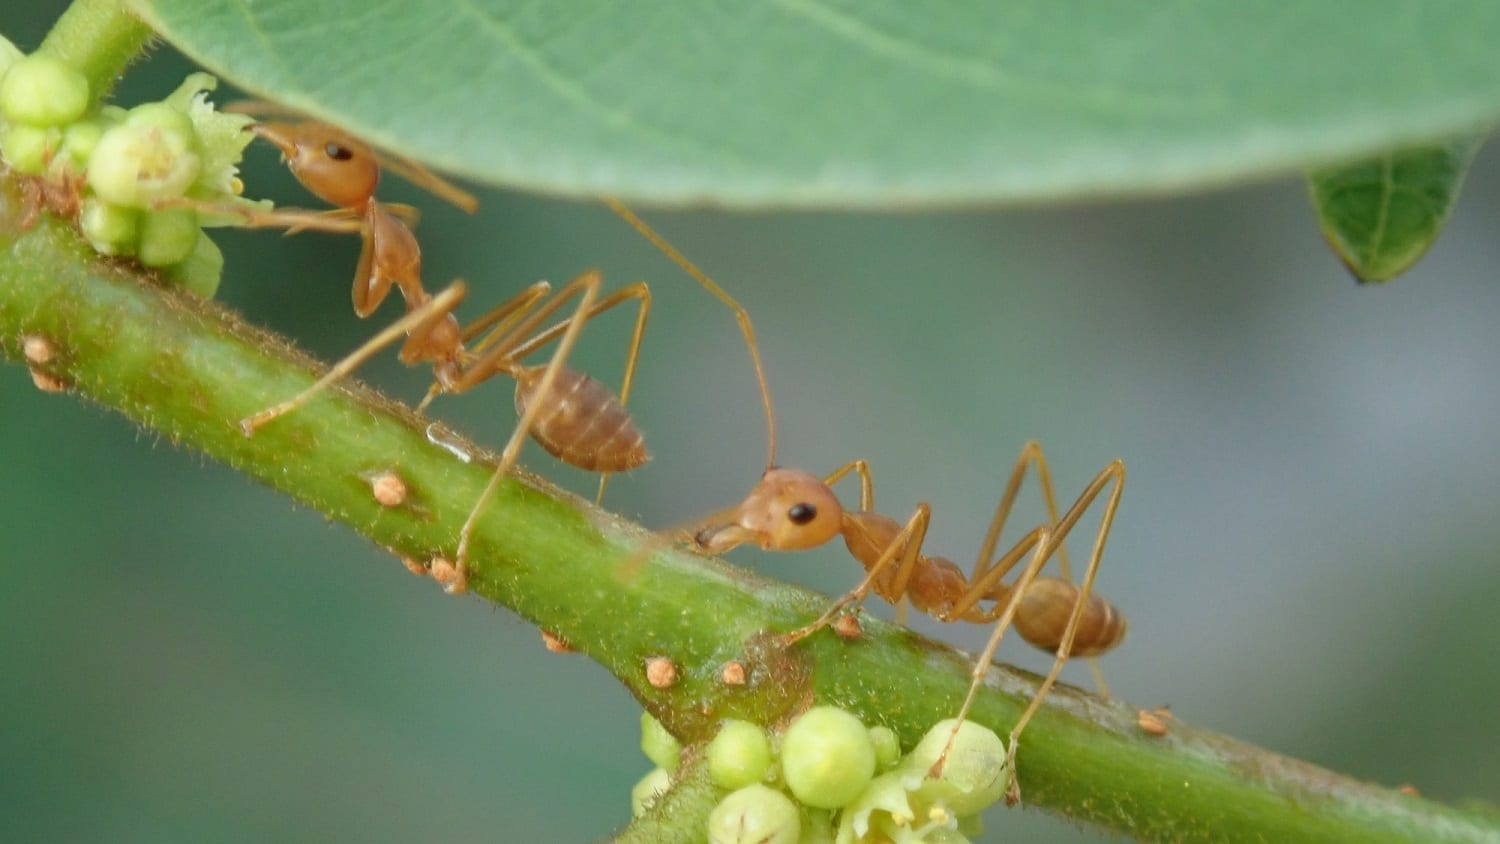 Translucent brown ants on a green stem: Photo 134021905 © Aaron Lee | Dreamstime.com